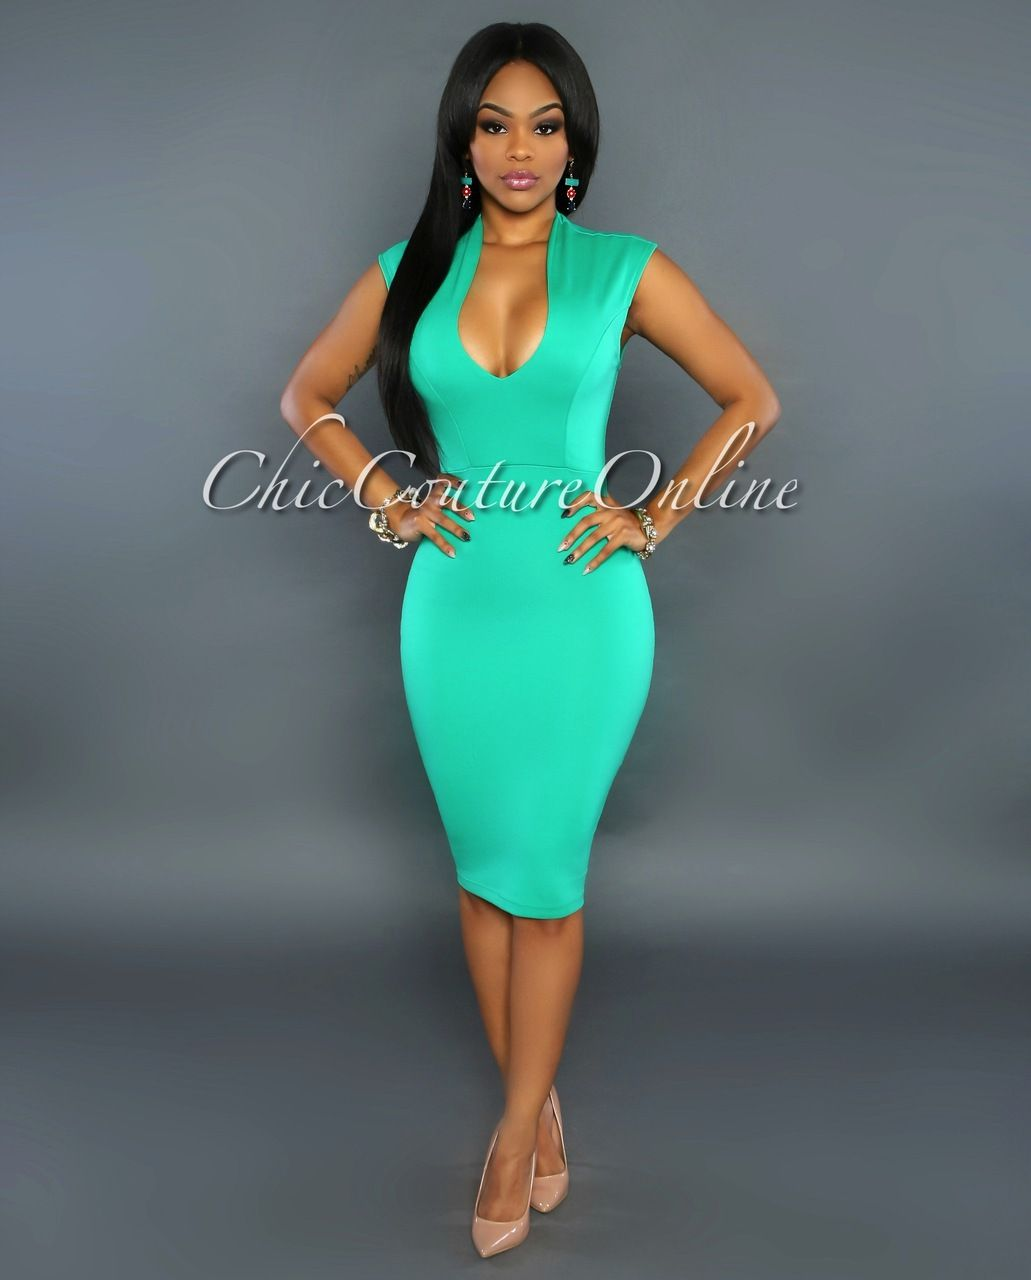 Chic Couture Online - Maui Green Low V Neckline Dress, (http://www ...